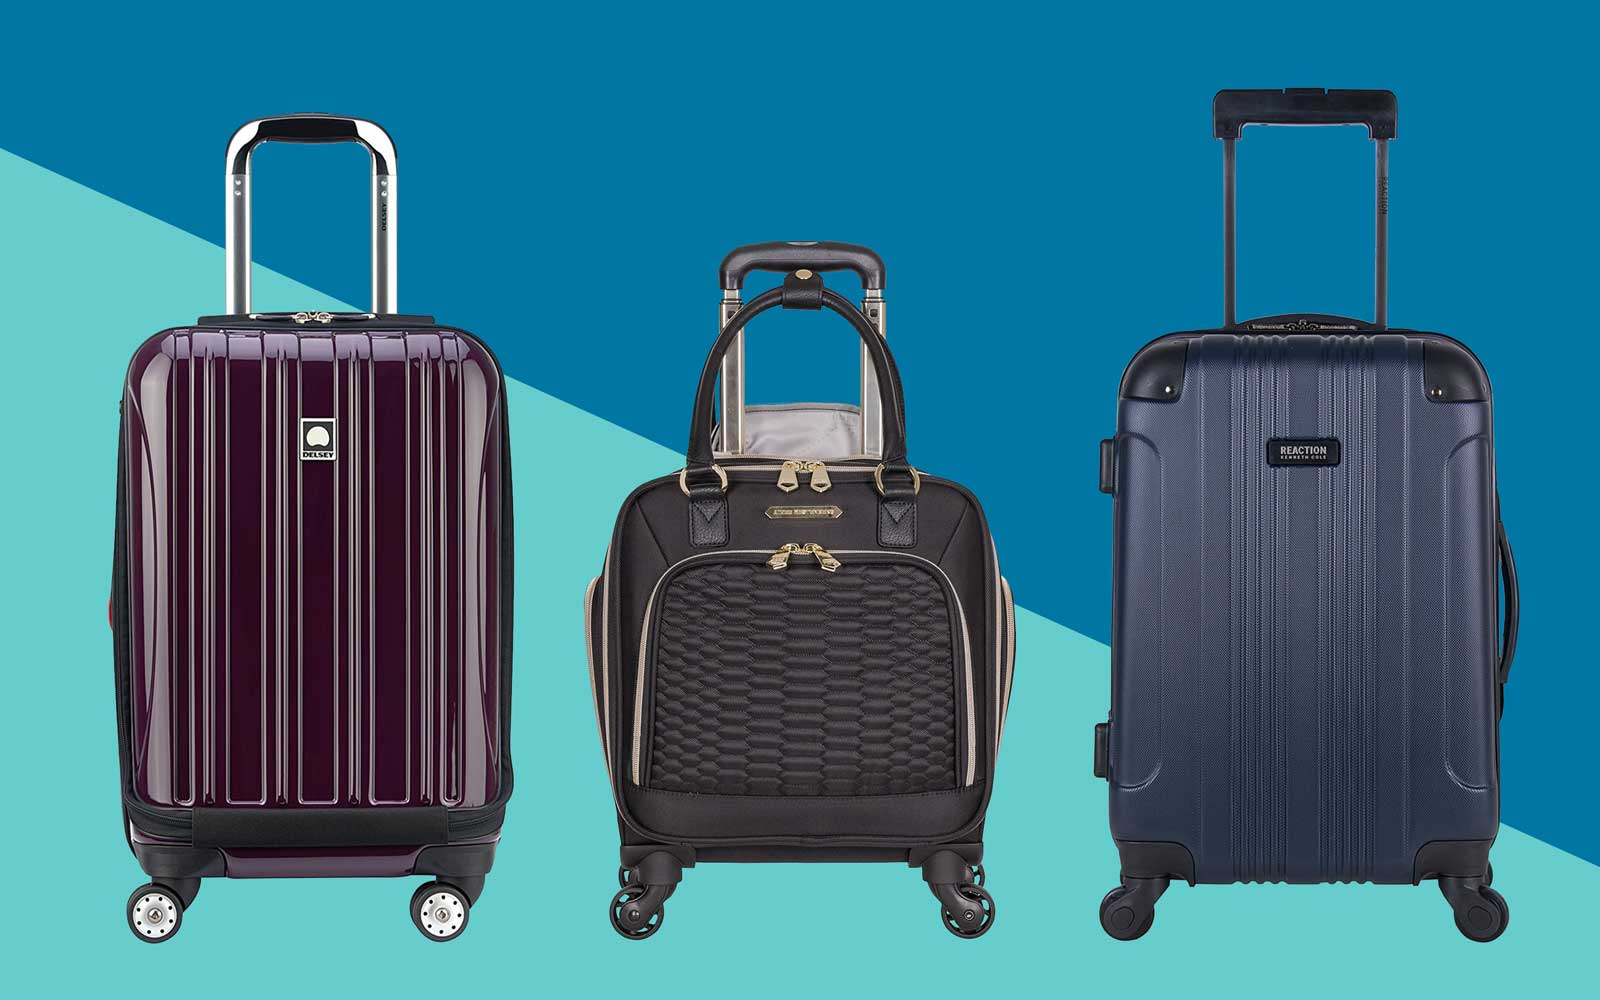 The Best Carry-on Luggage You Can Get on Amazon